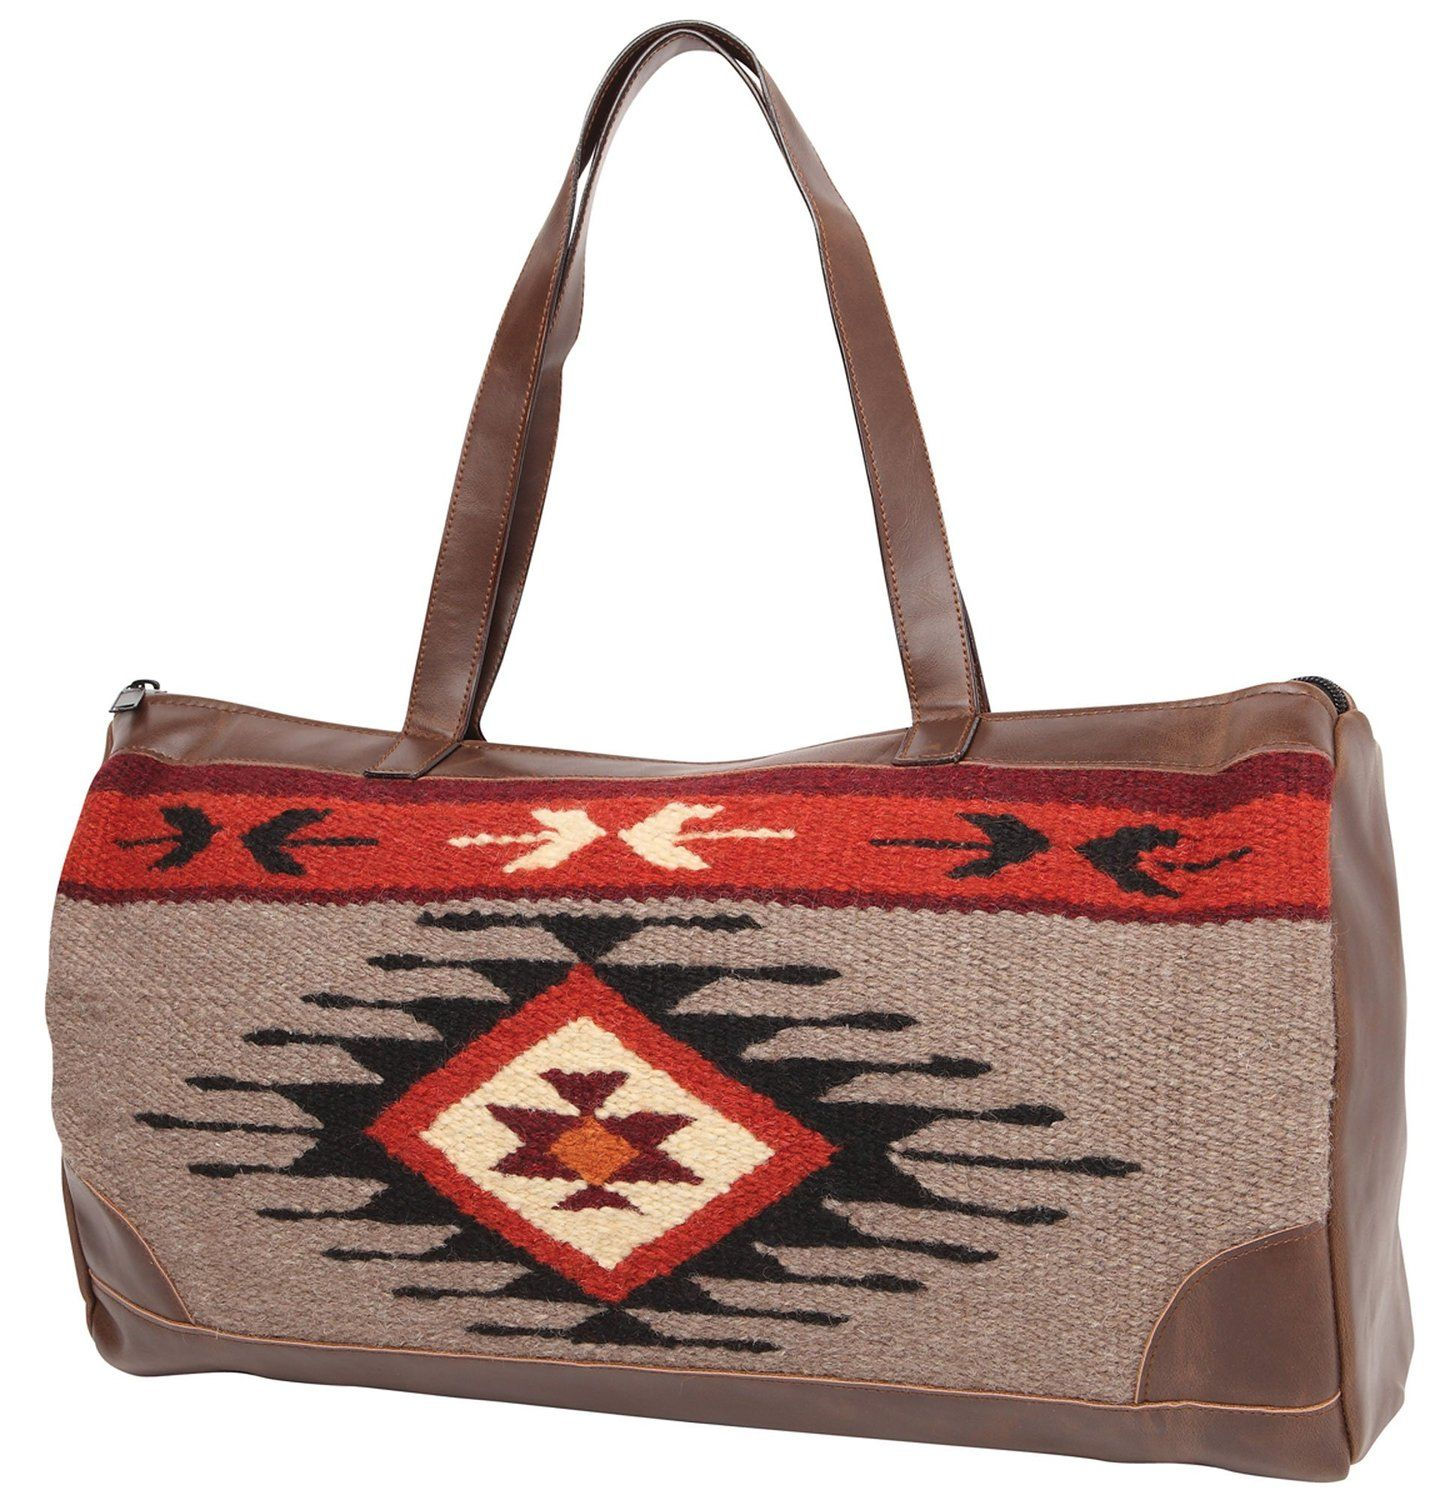 el paso designs extra large tote bag w s zapotec an el paso designs extra large tote bag w s zapotec an designs hand